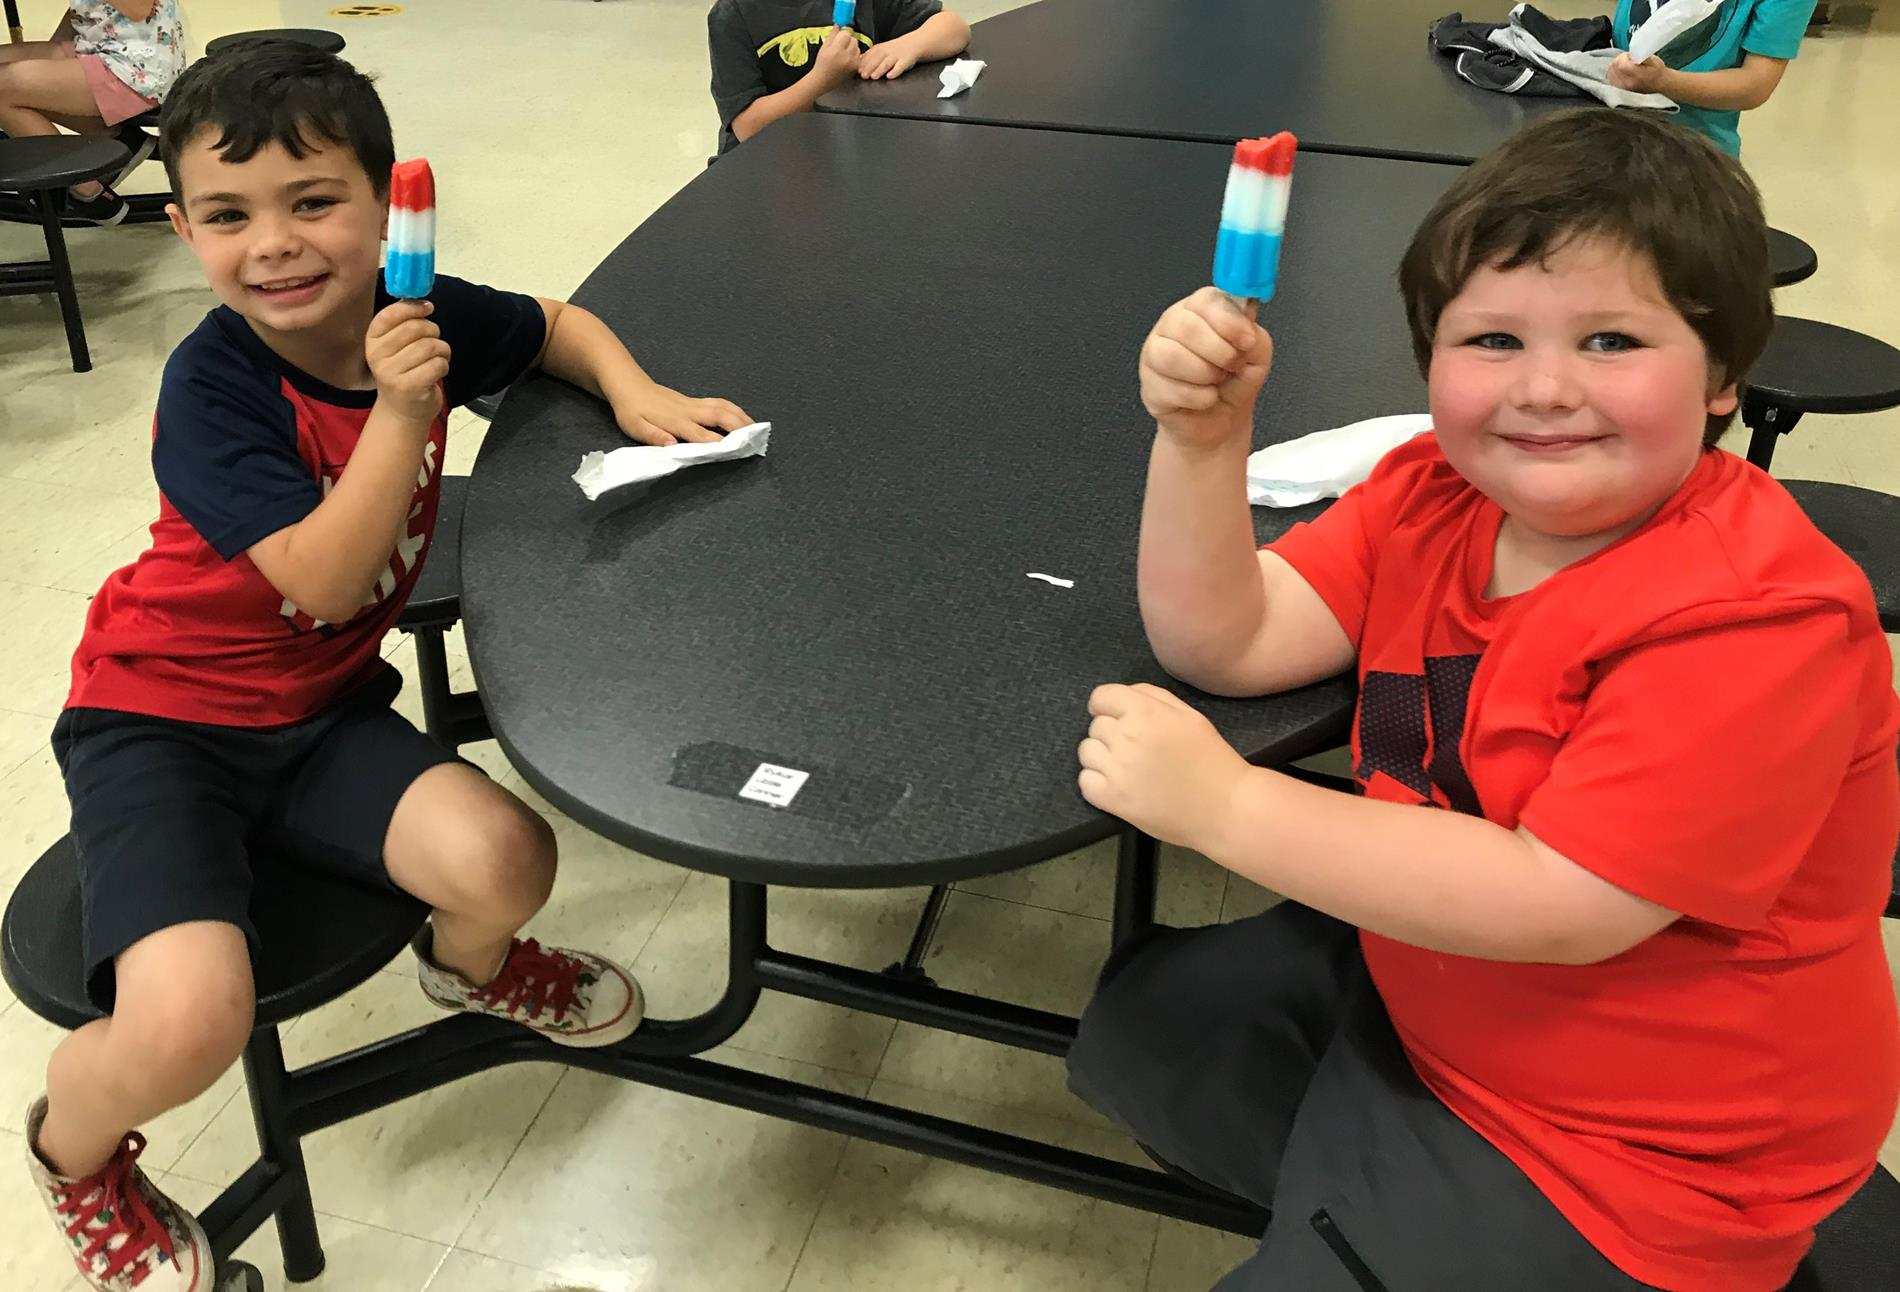 students eating popsicles